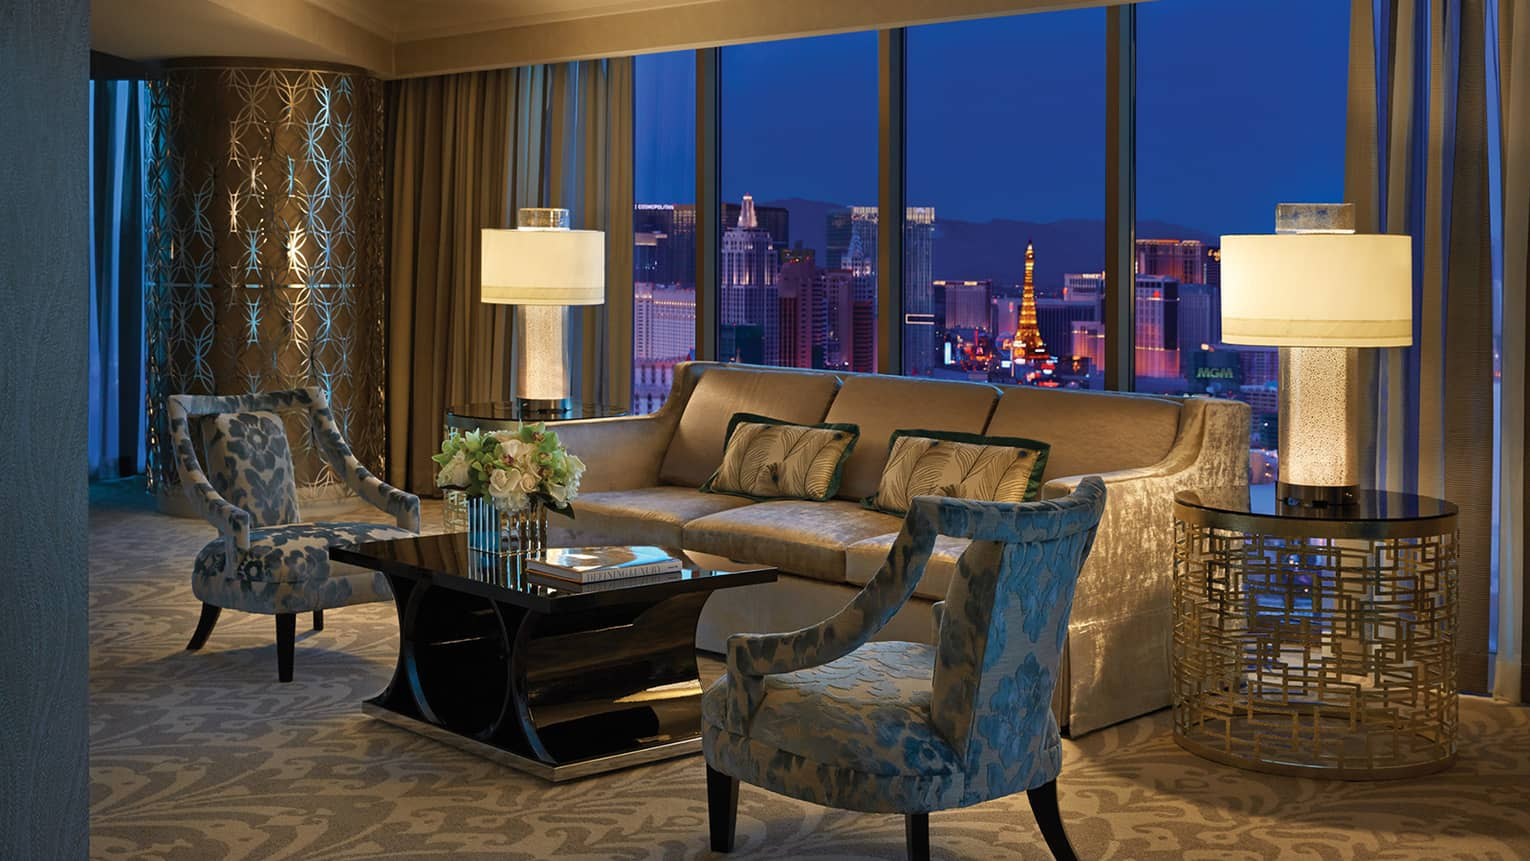 Hotel suite's living room with sofa, two chairs and two illuminated lamps, overlooking Las Vegas at night